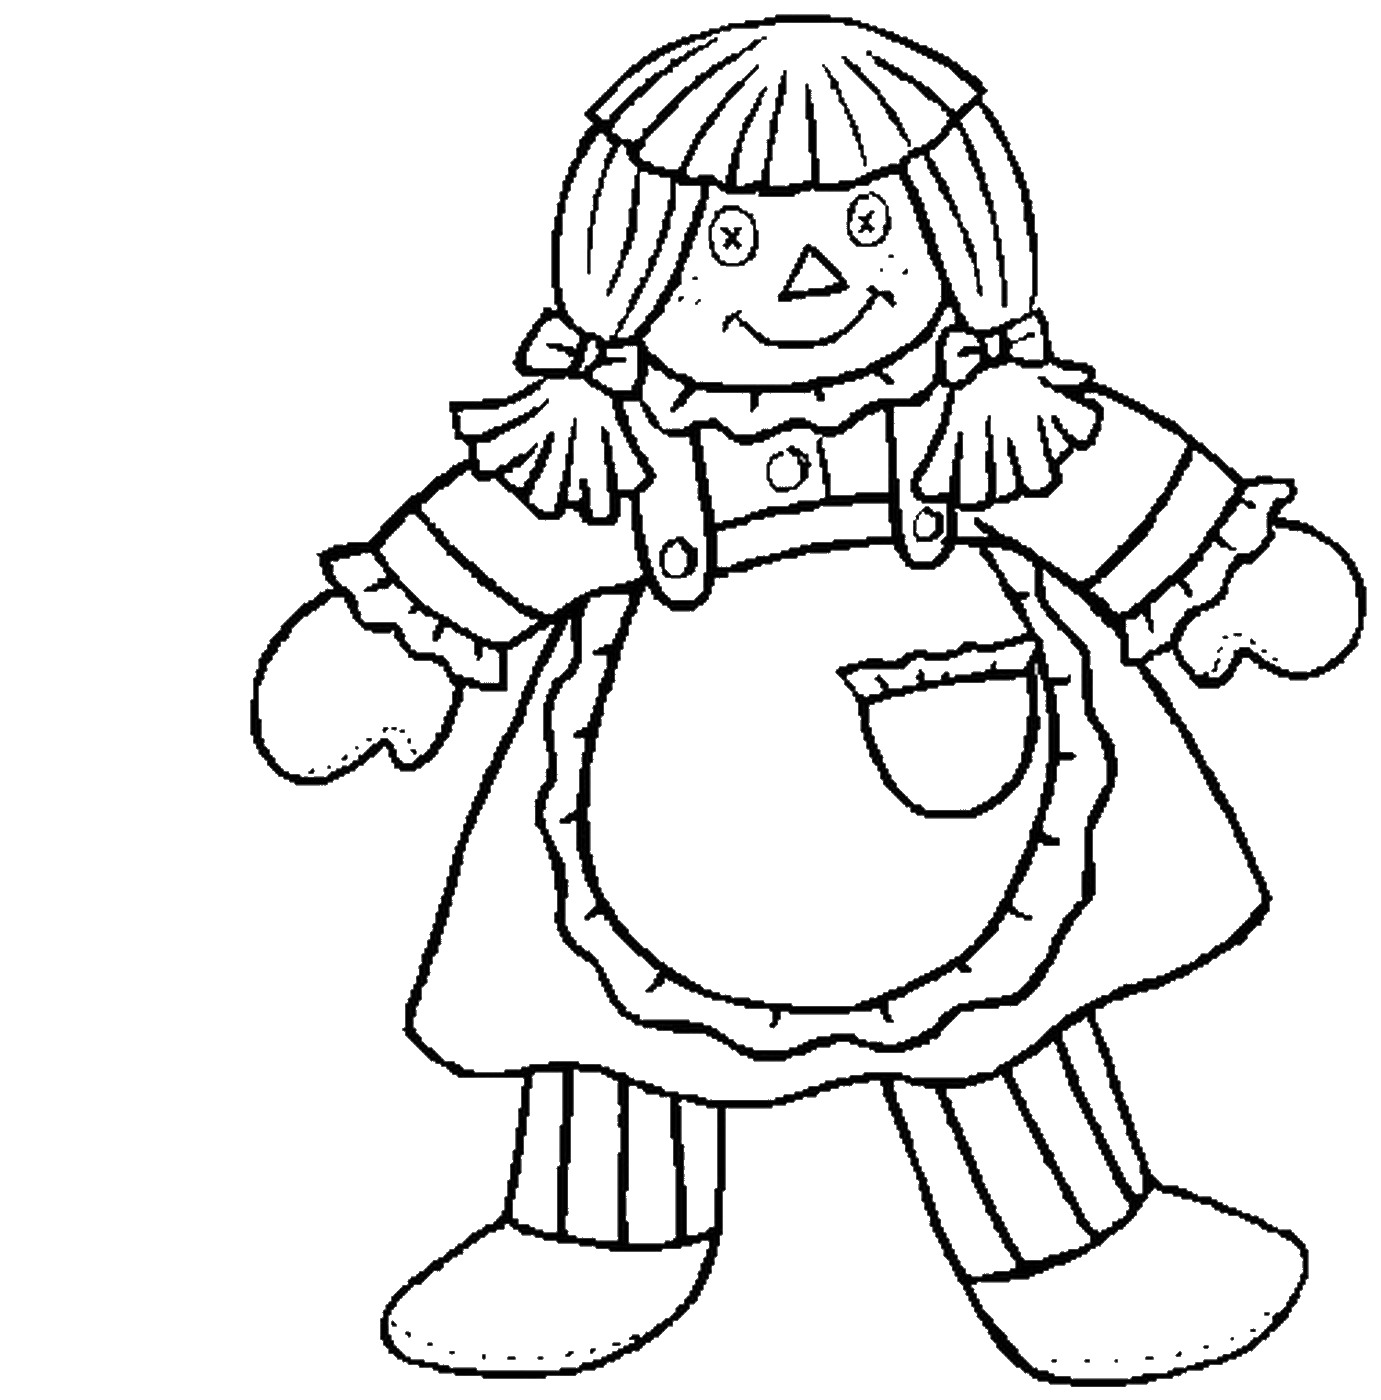 doll coloring page dolls coloring pages free printable dolls coloring pages doll coloring page